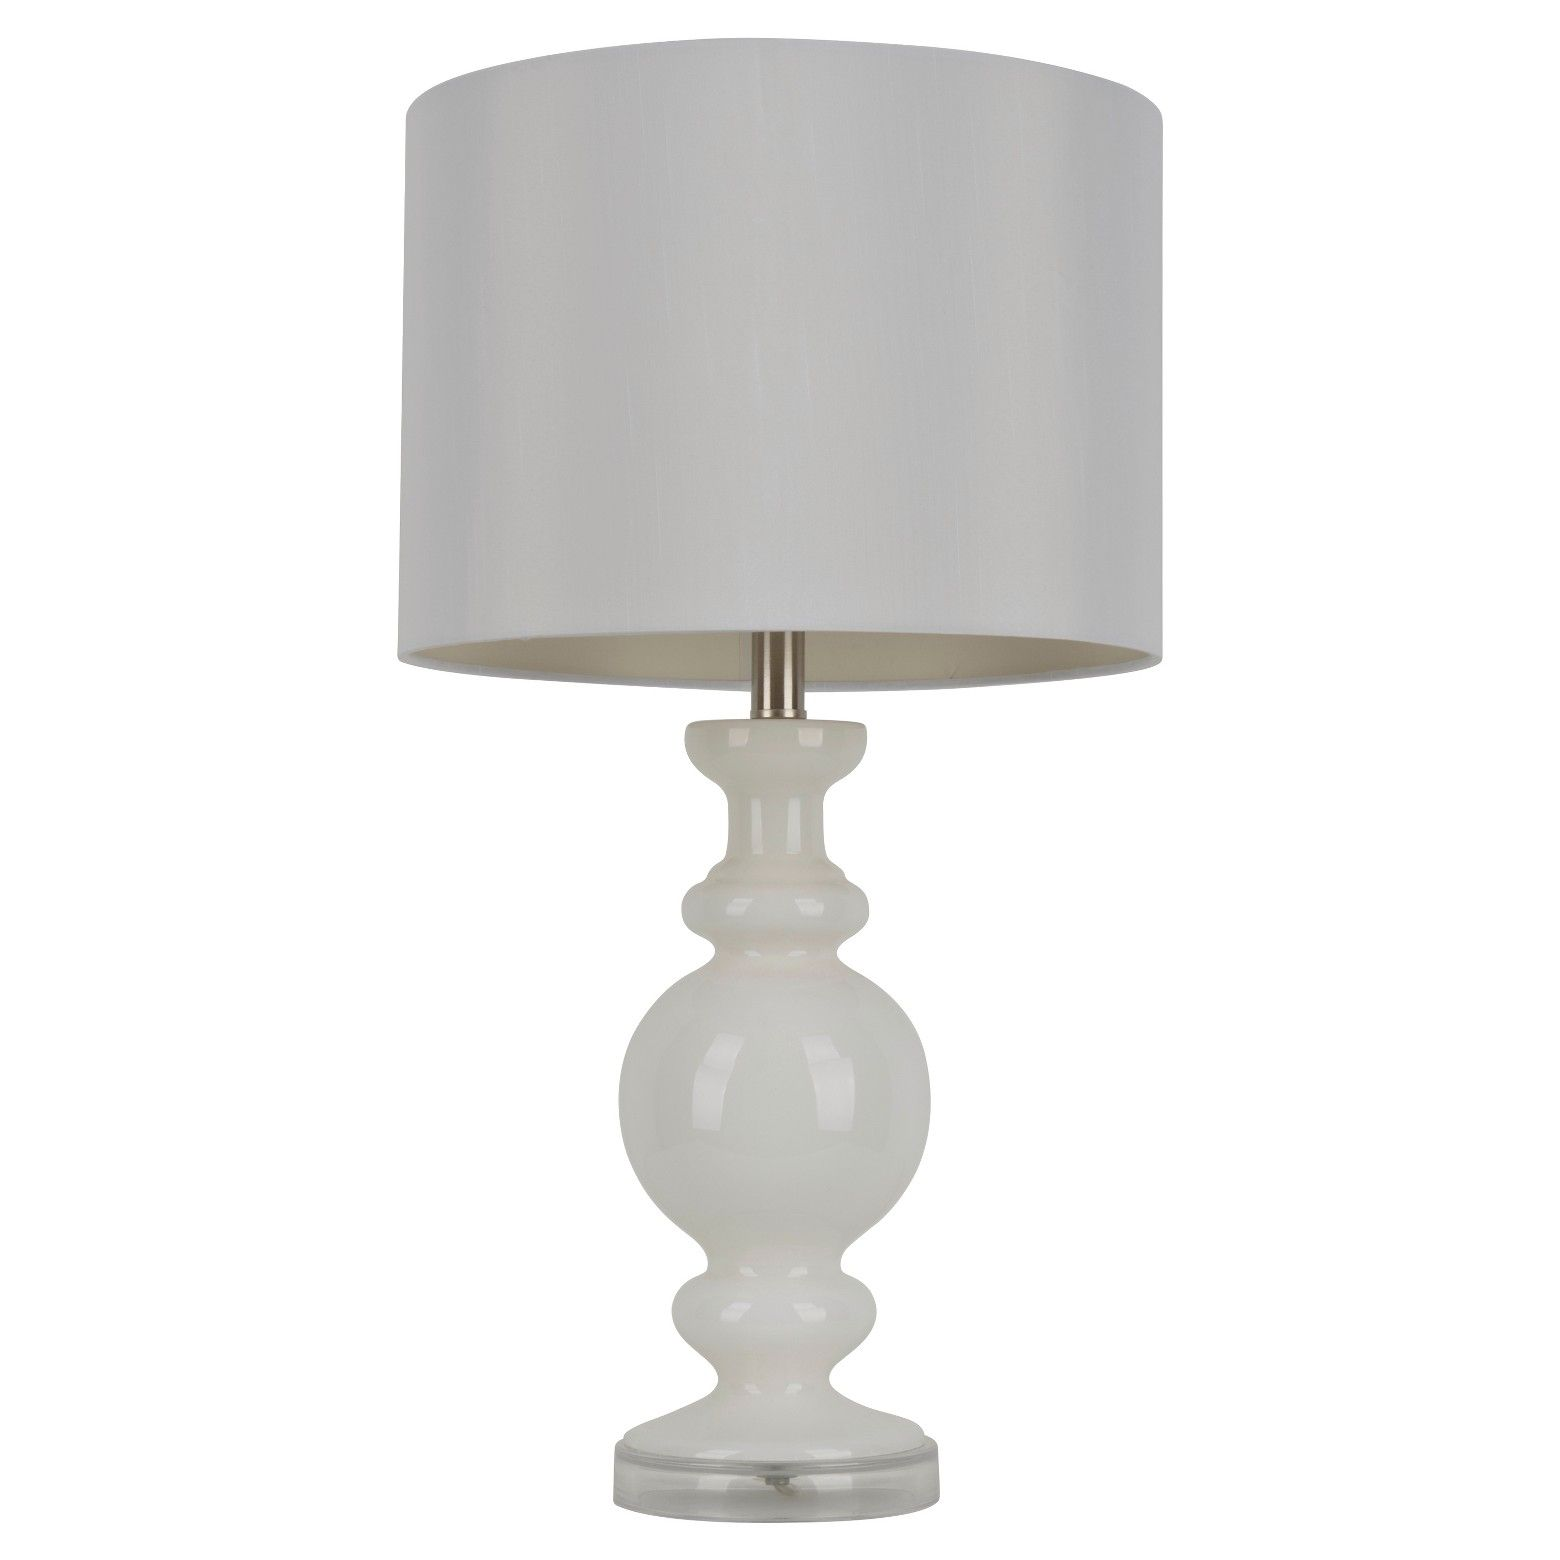 J Hunt Milk Glass Table Lamp White 27 With Images White Table Lamp Decor Therapy Glass Table Lamp